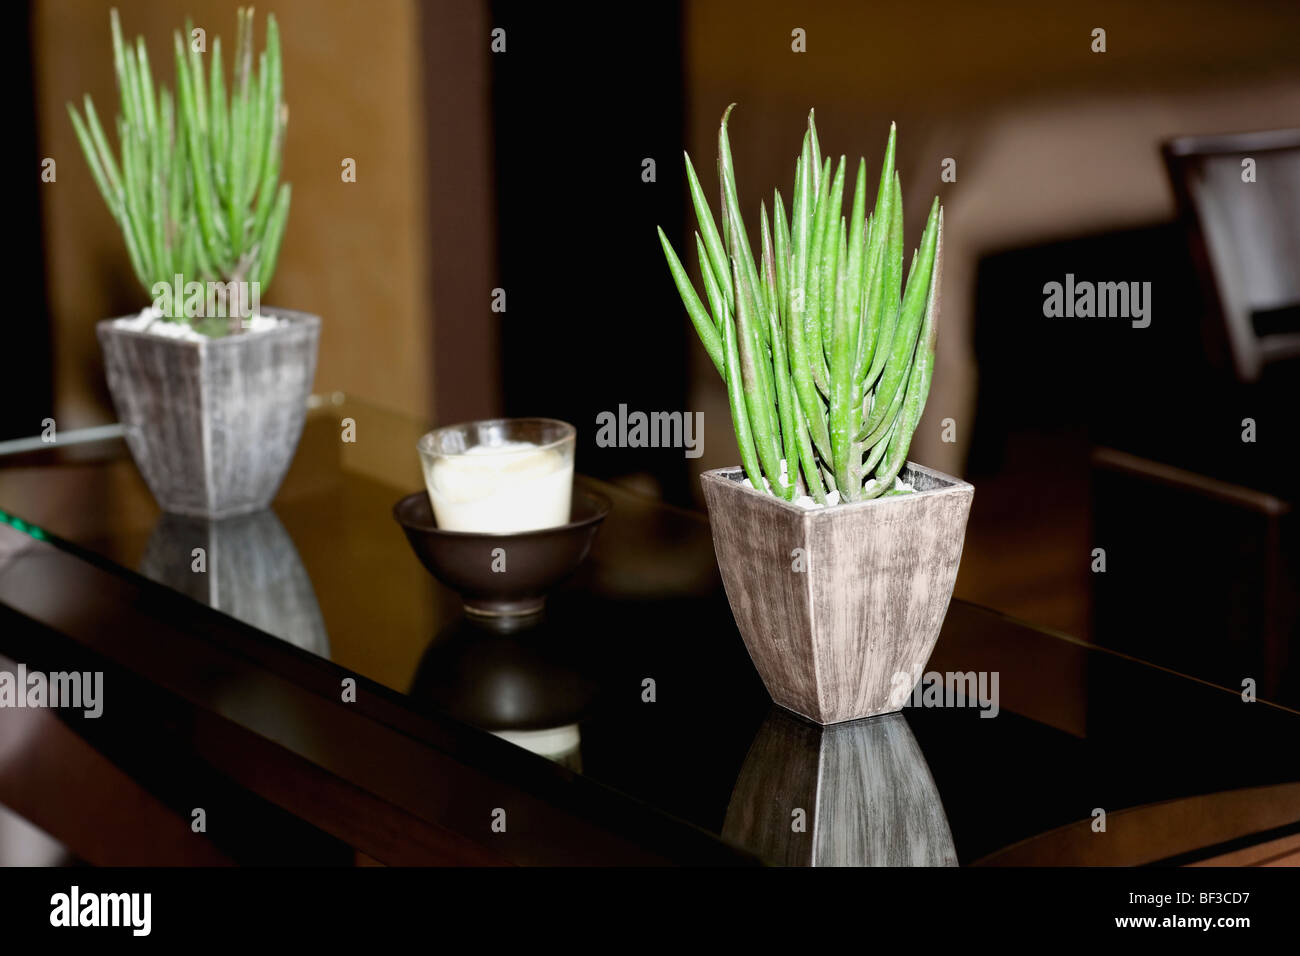 Two houseplants on a table - Stock Image